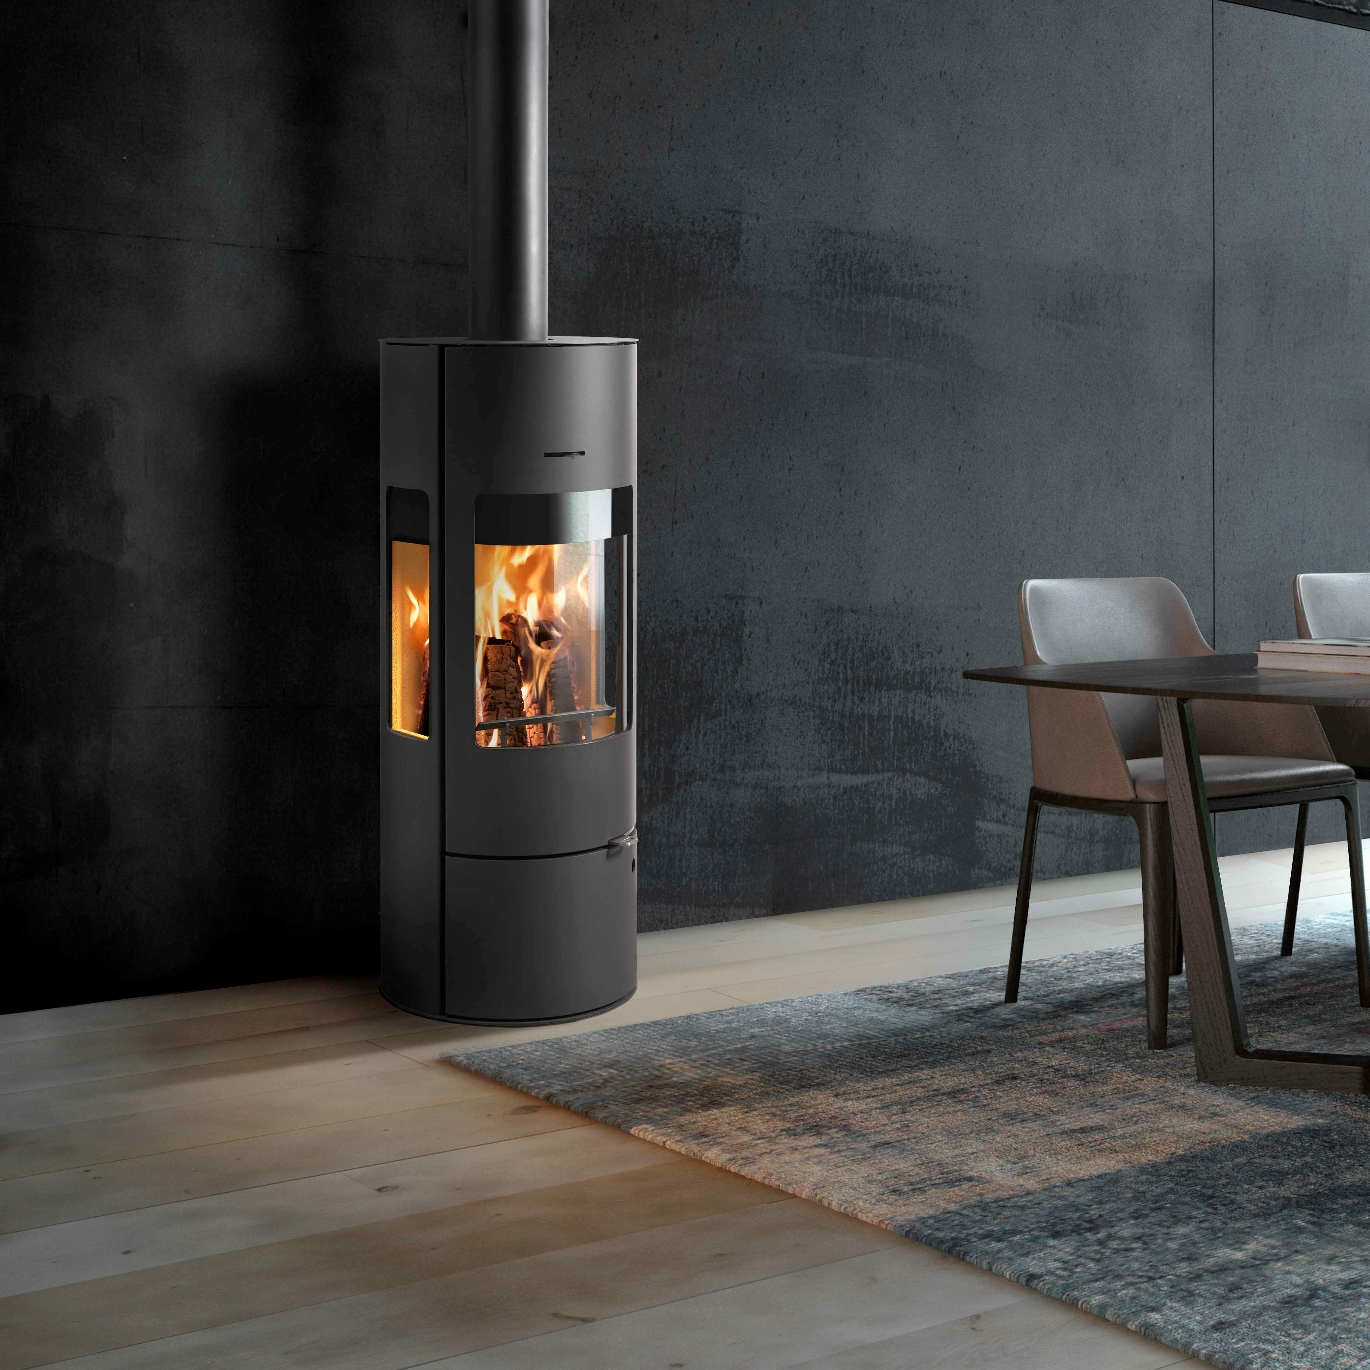 Westfire Uniq 37 7.2kw Large Defra Wood Burning Convection Stove